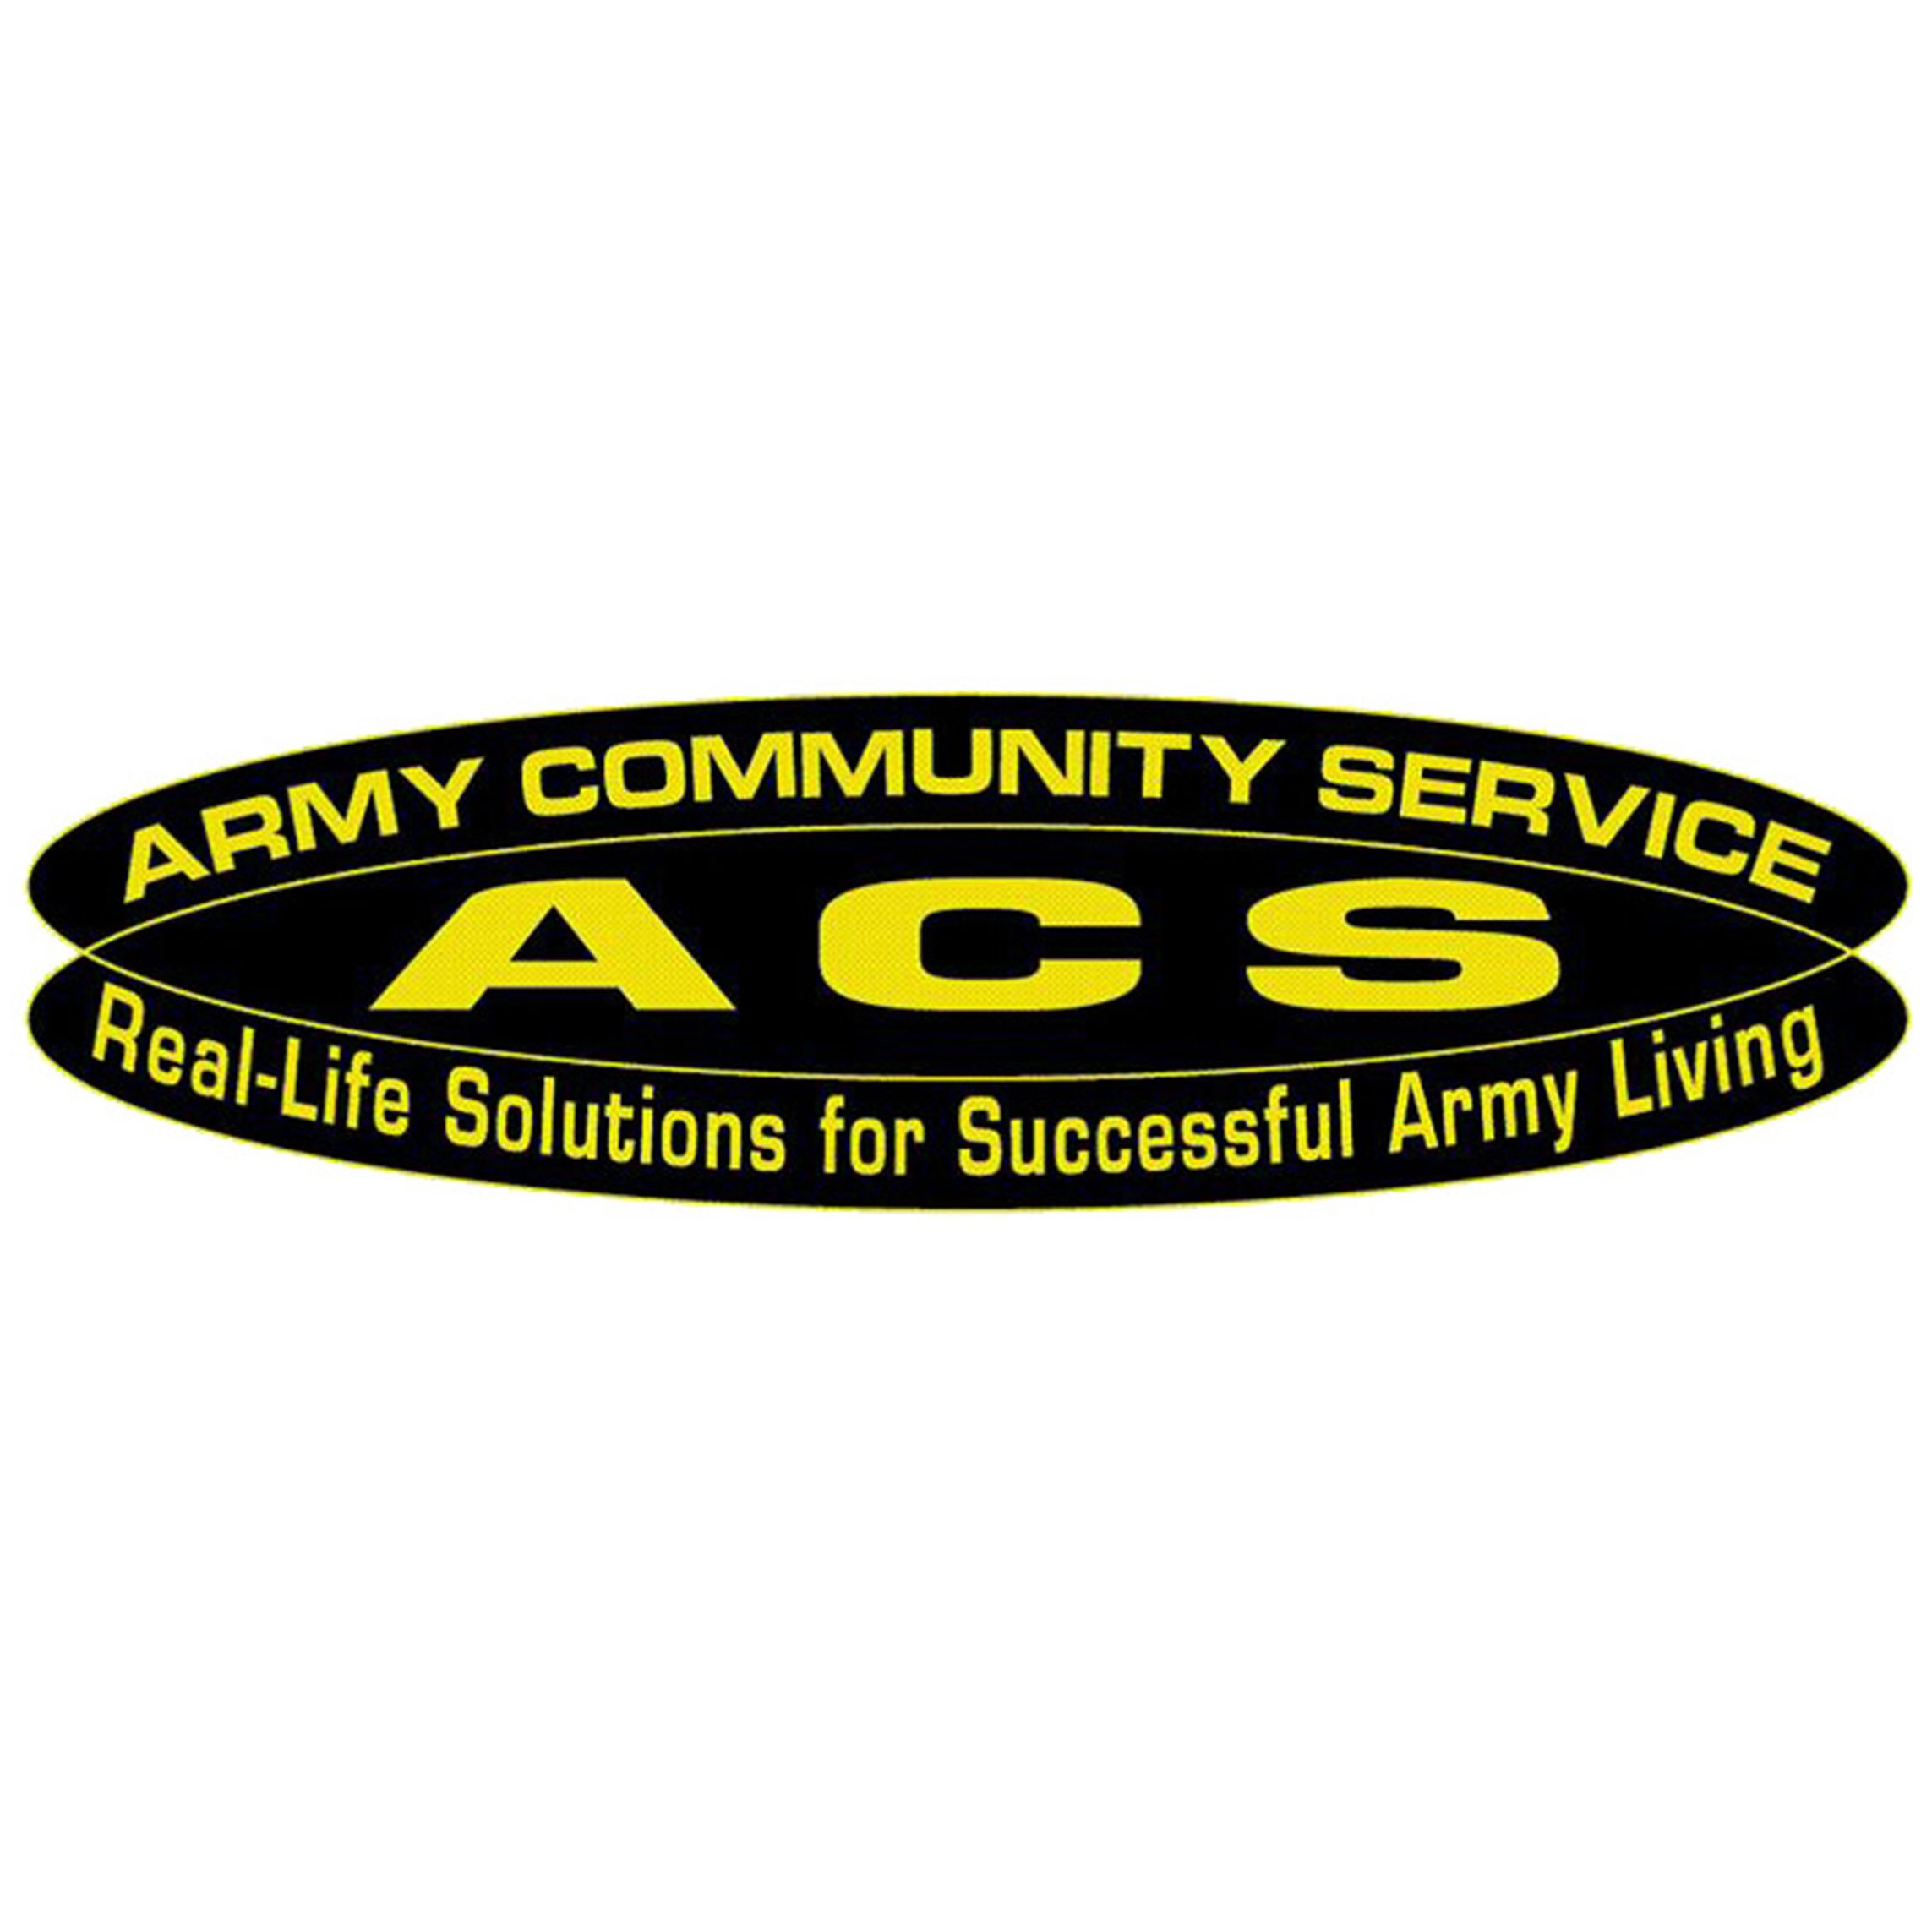 Pin by FLW Family & MWR on Army Community Service in 2020